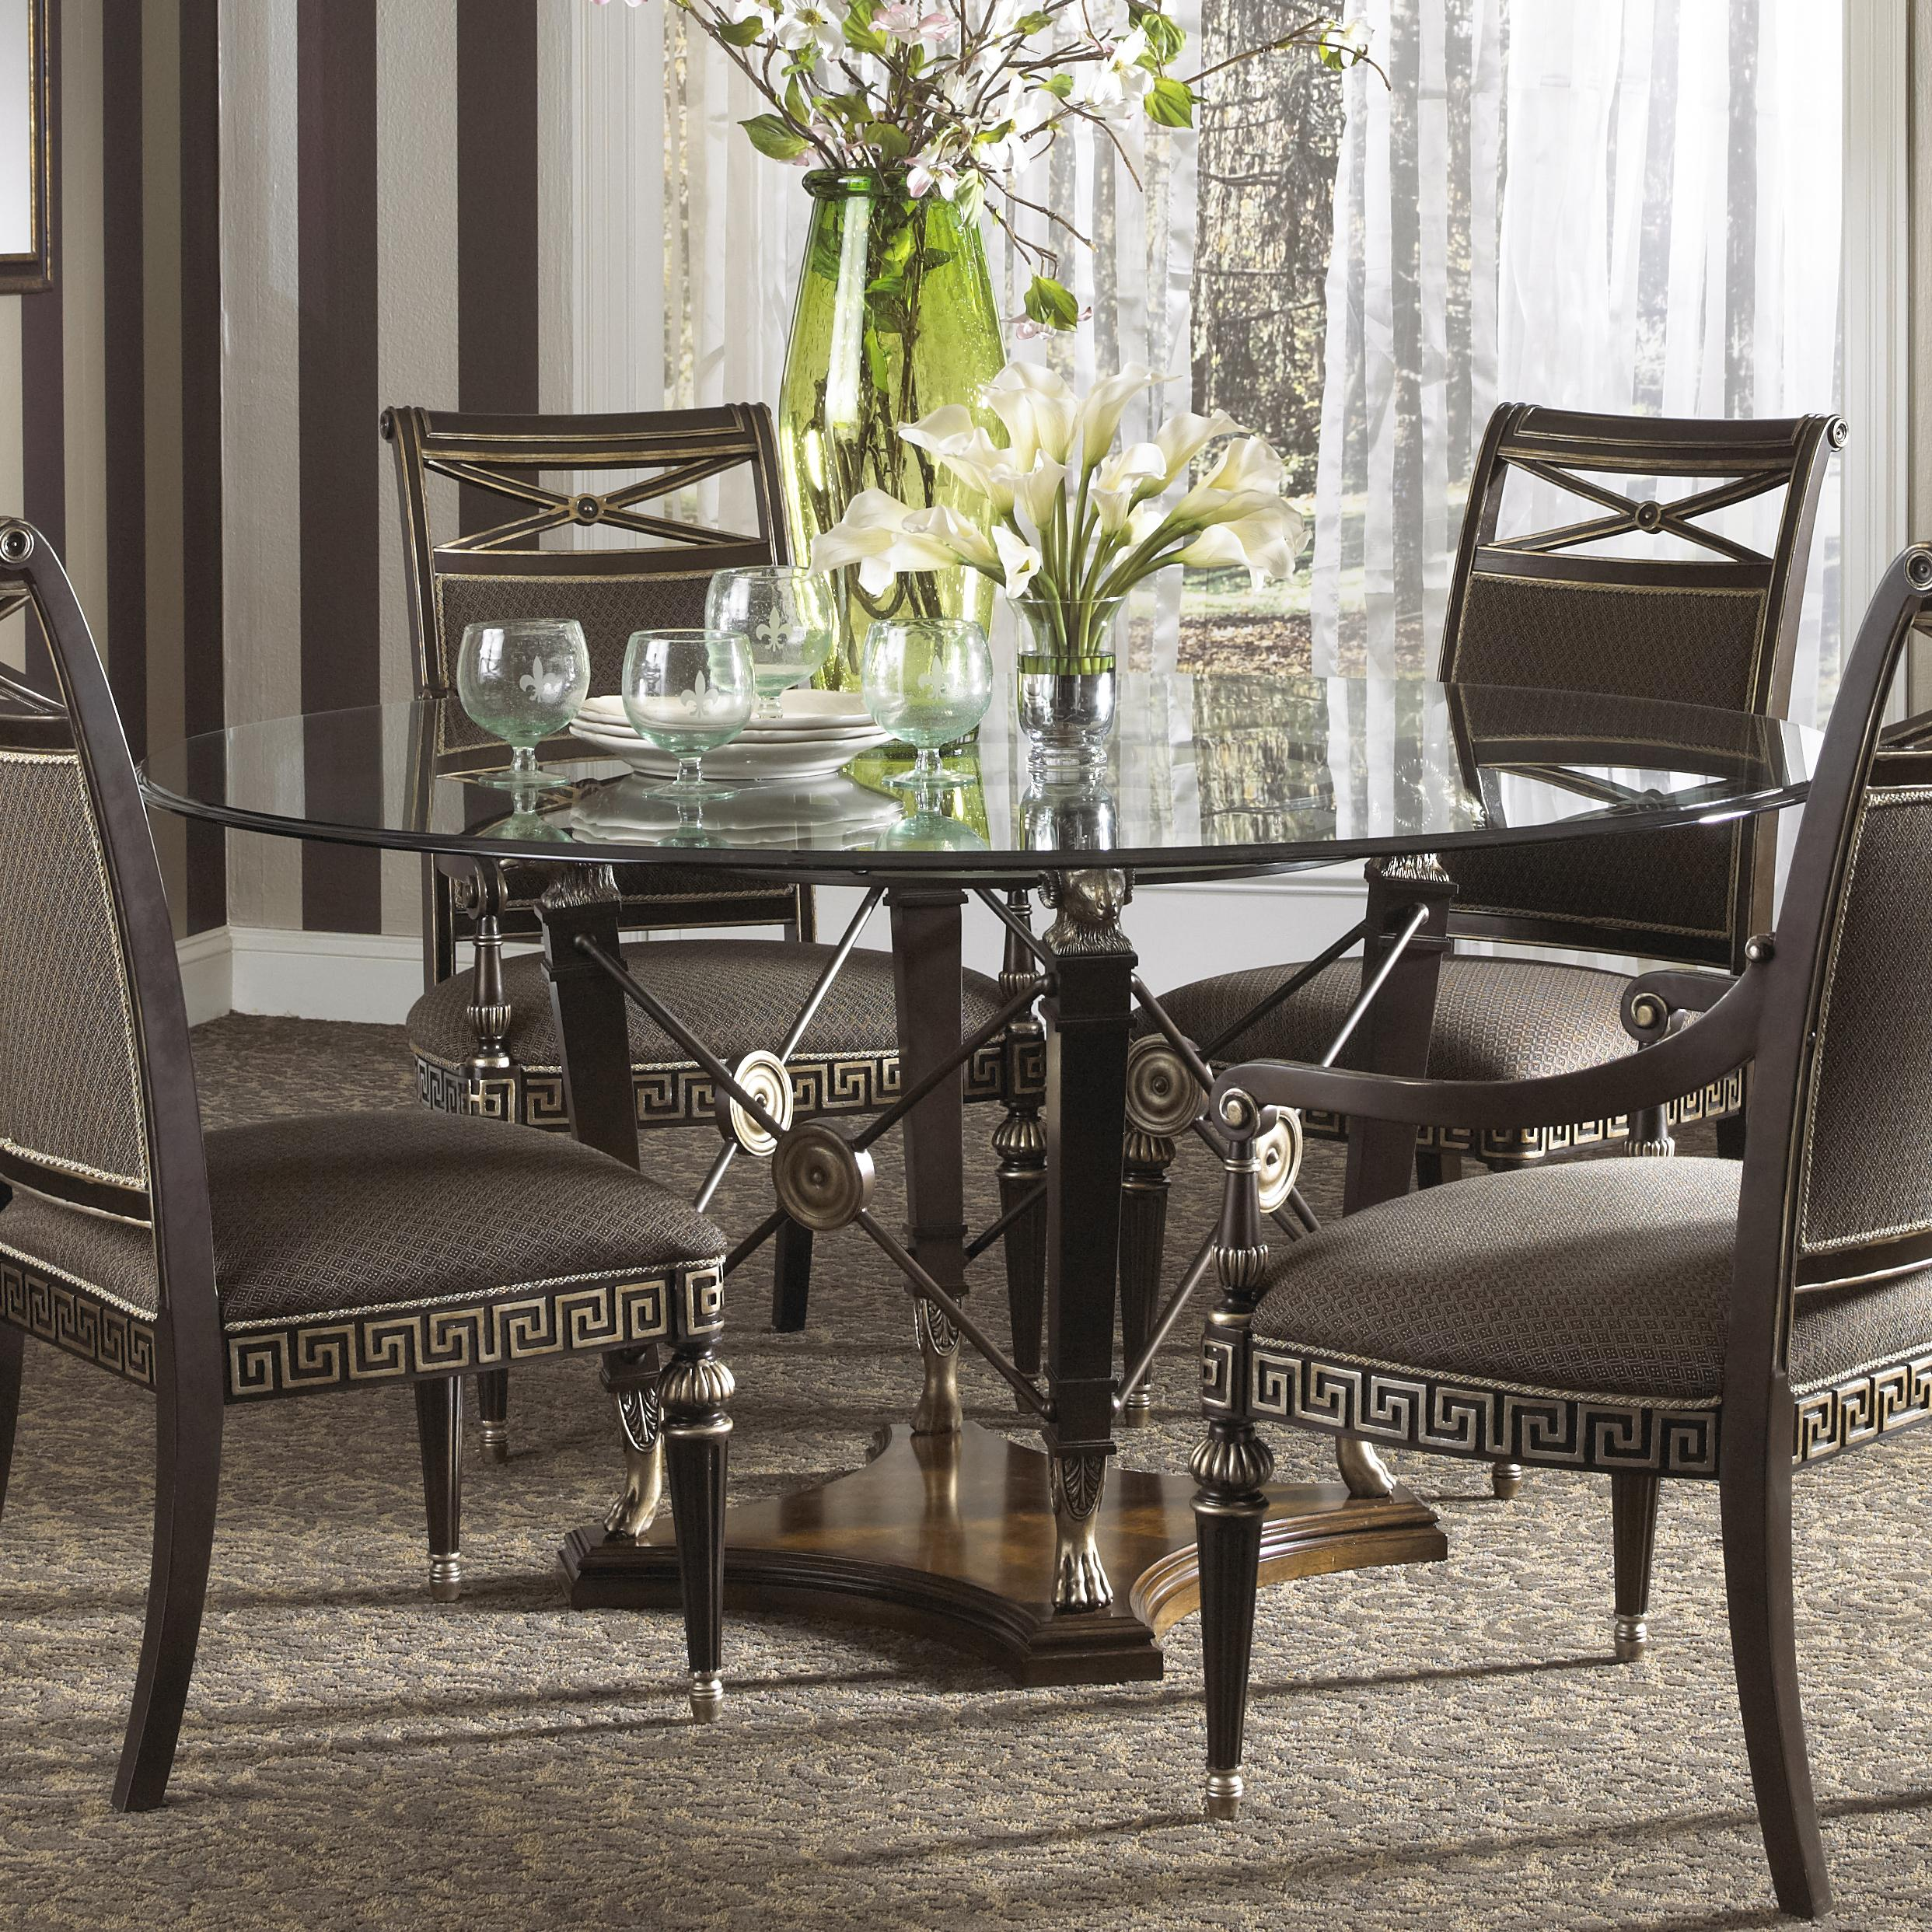 Formal grecian style round dining table with glass top by for Small elegant dining room tables